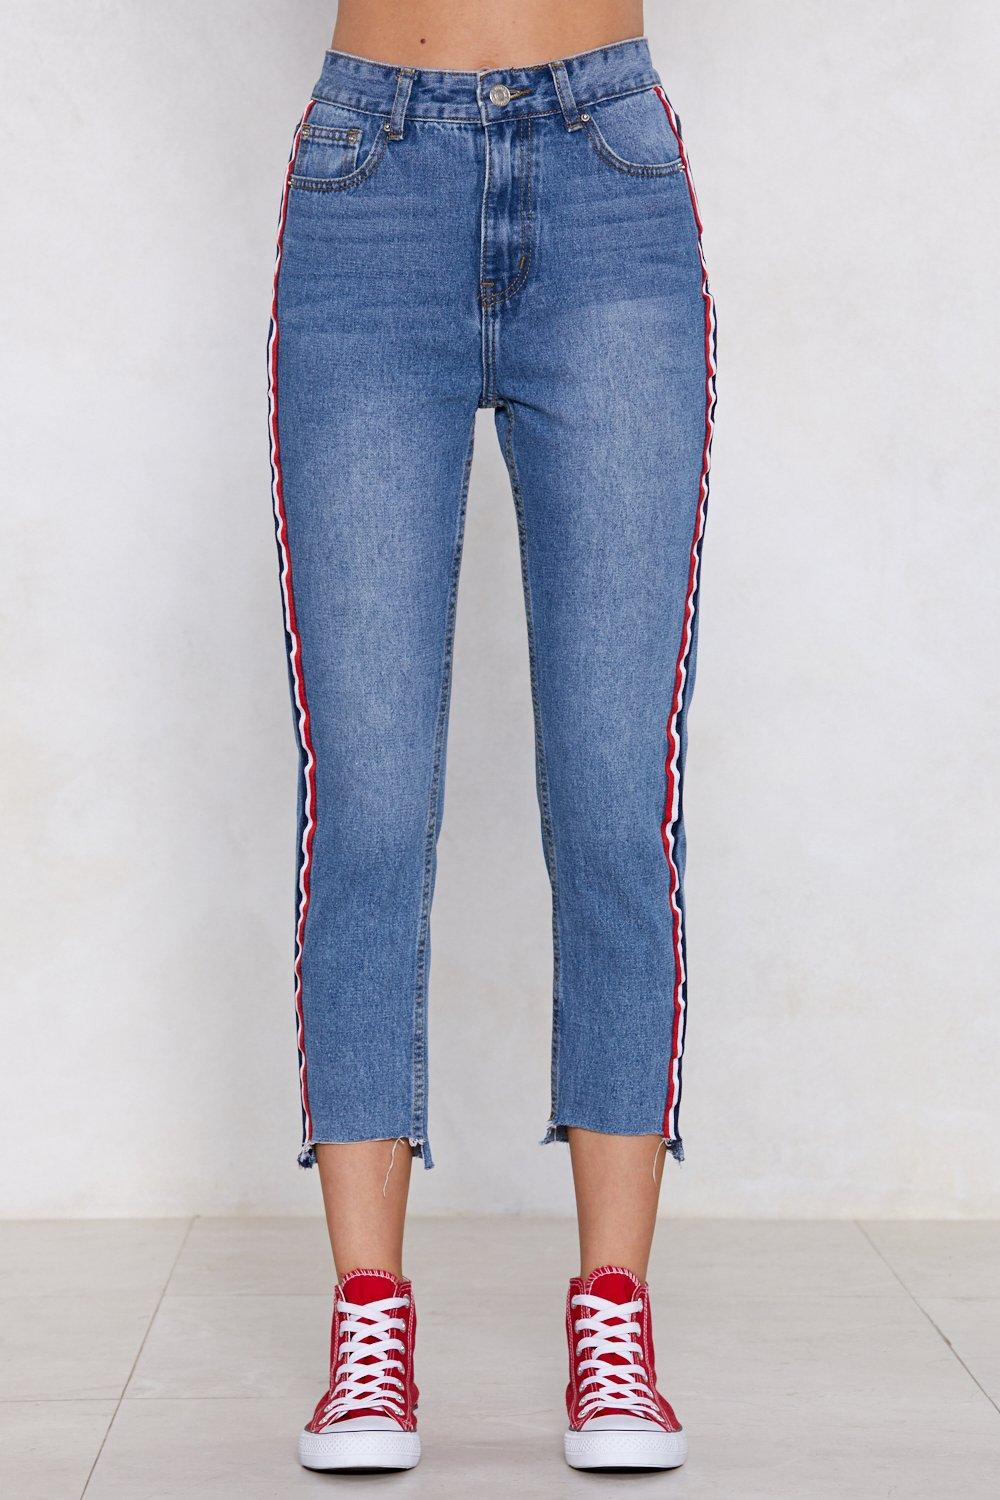 bccf6ab22 You're Absolutely Stripe High-Waisted Jeans | Shop Clothes at Nasty Gal!